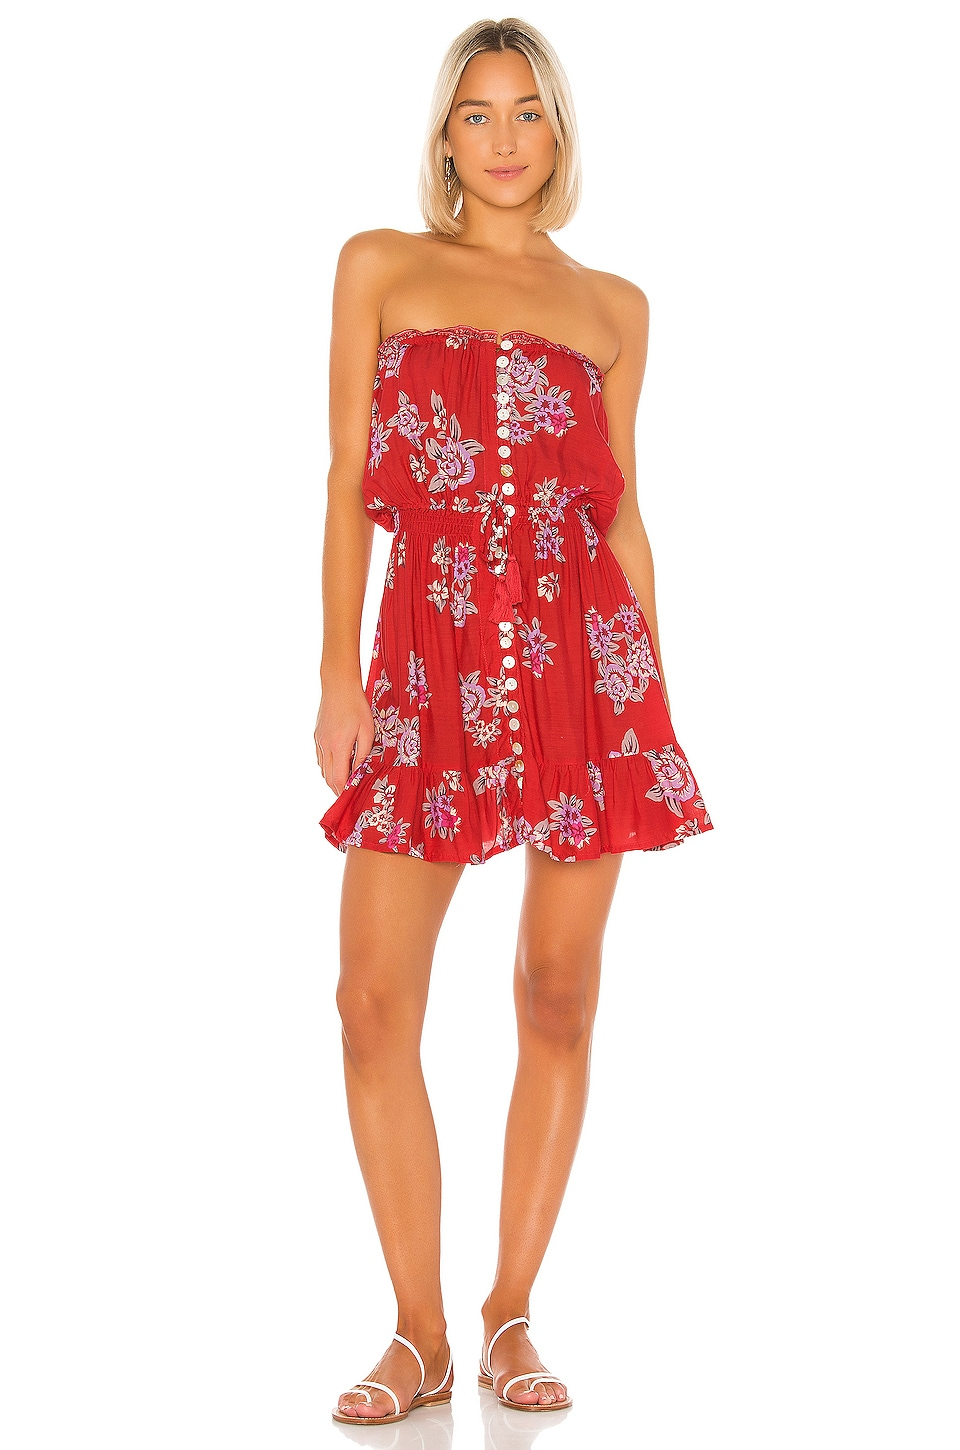 Tiare Hawaii Ryden Mini Dress in Vintage Hawaii Red